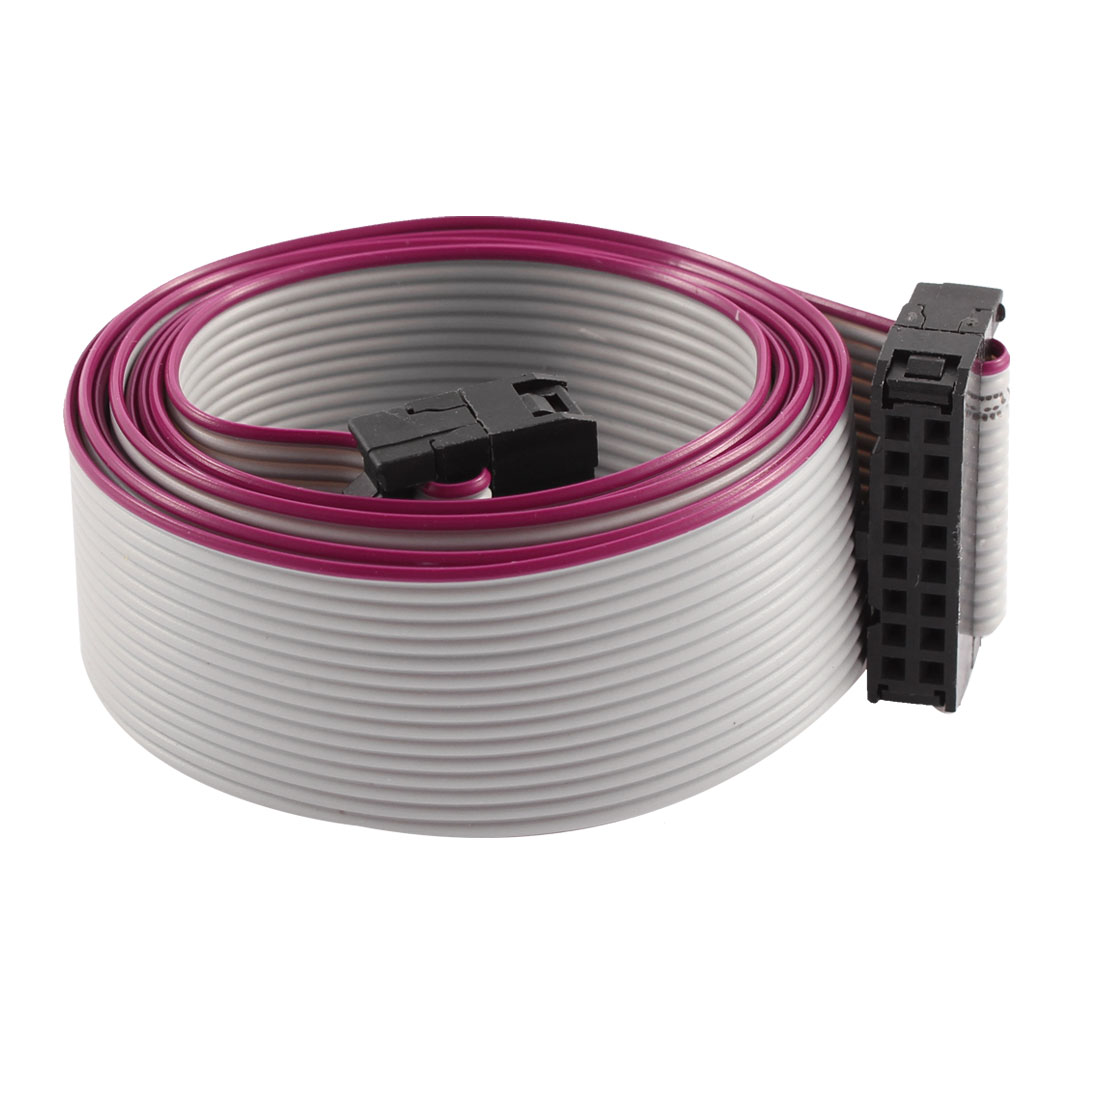 FC16P IDC 16 Pin F/F Hard Drive Data Extension Wire Flat Ribbon Cable Connector 100cm Long for Motherboard